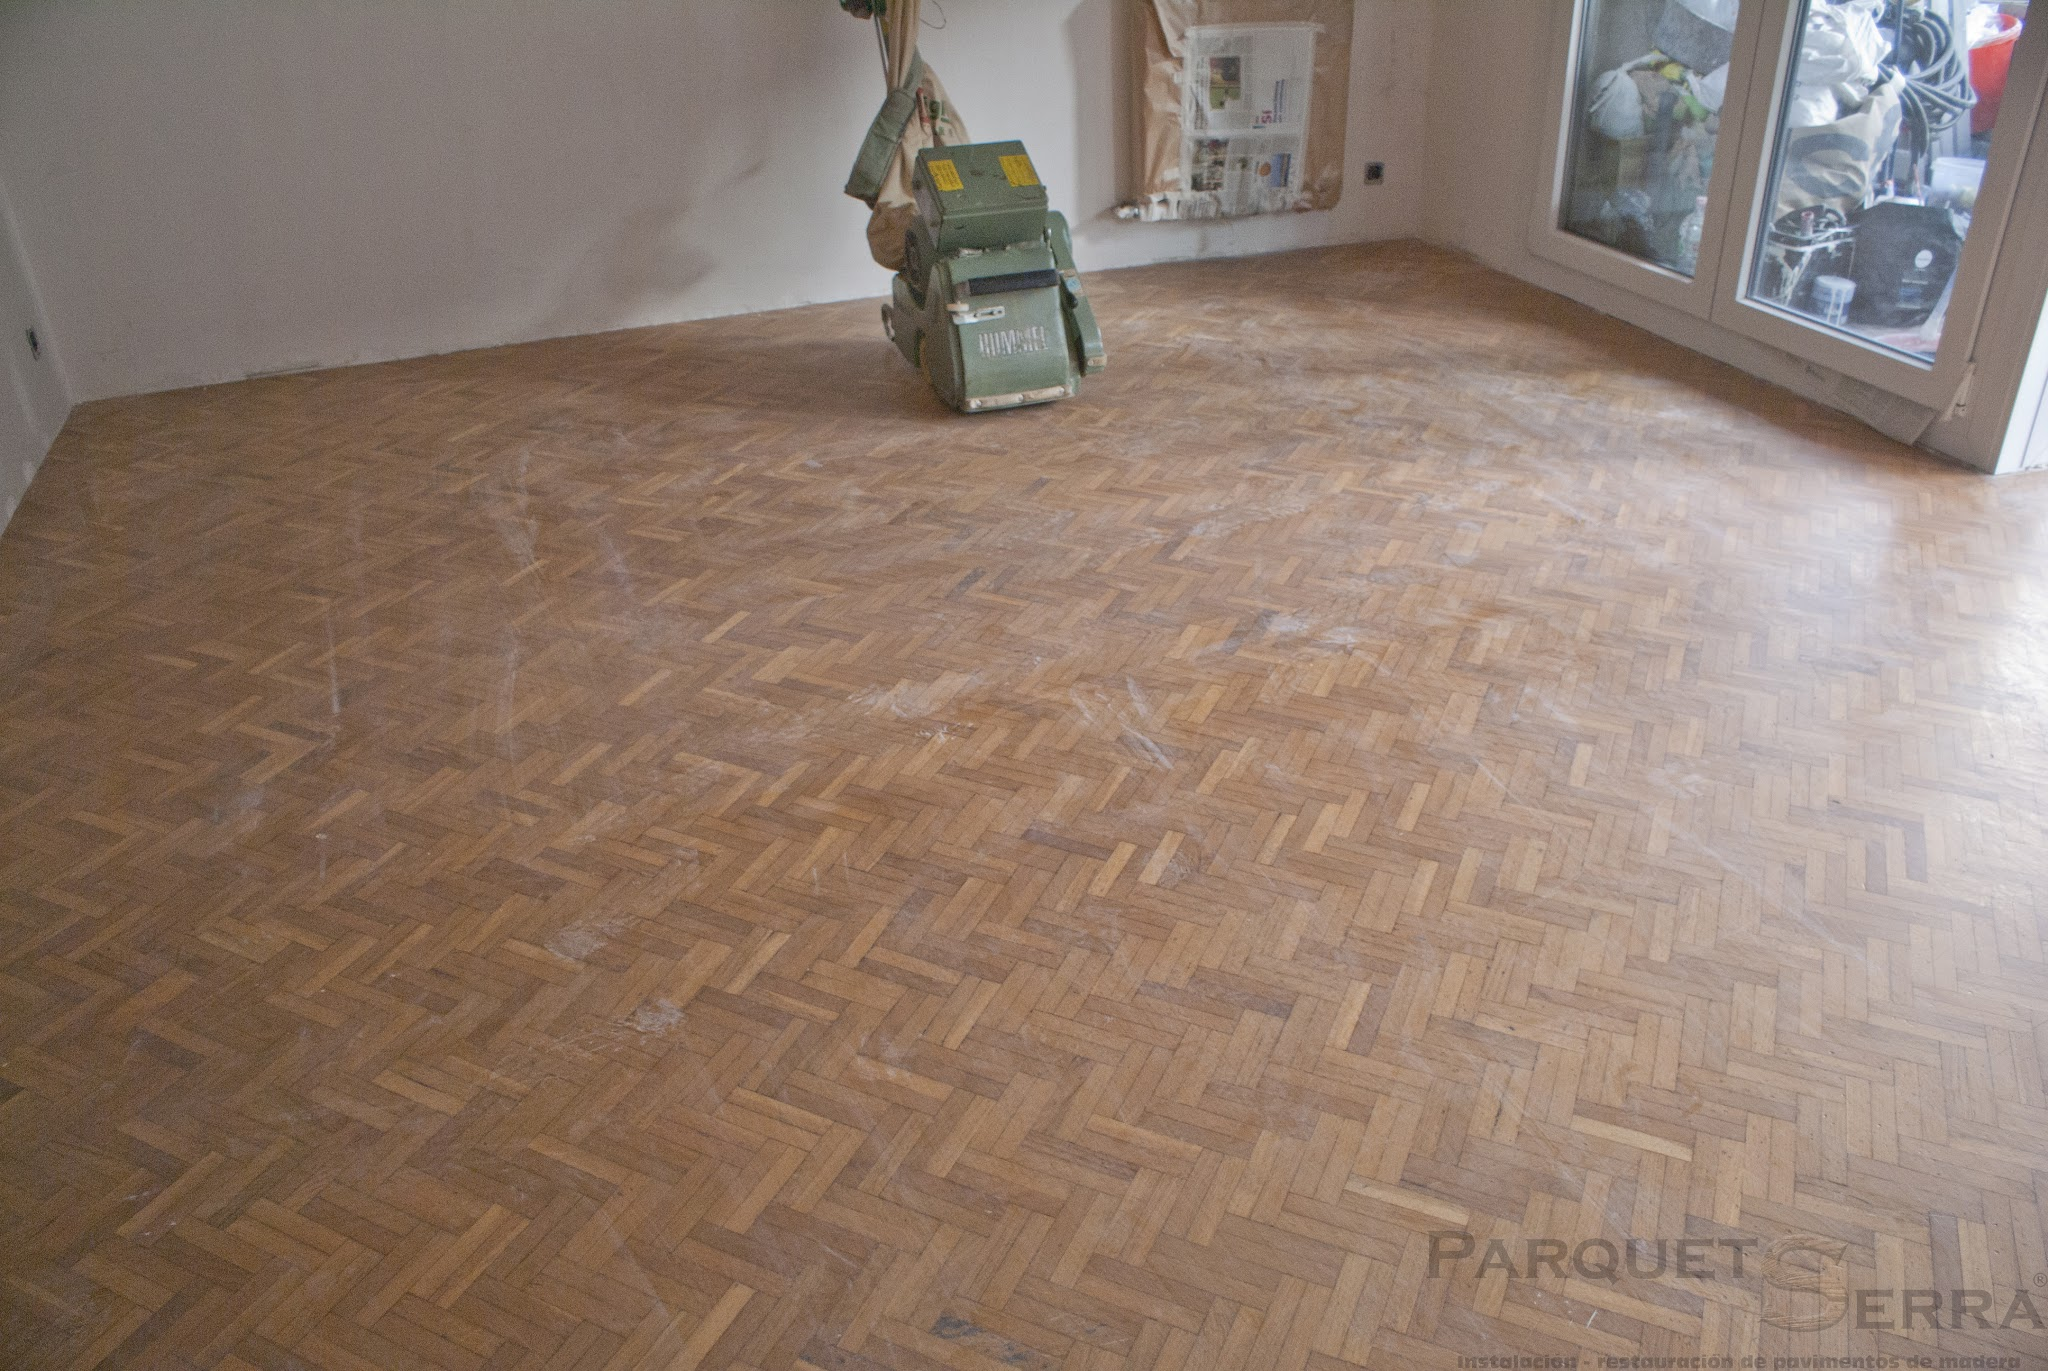 Photo: Acuchillado de parquet